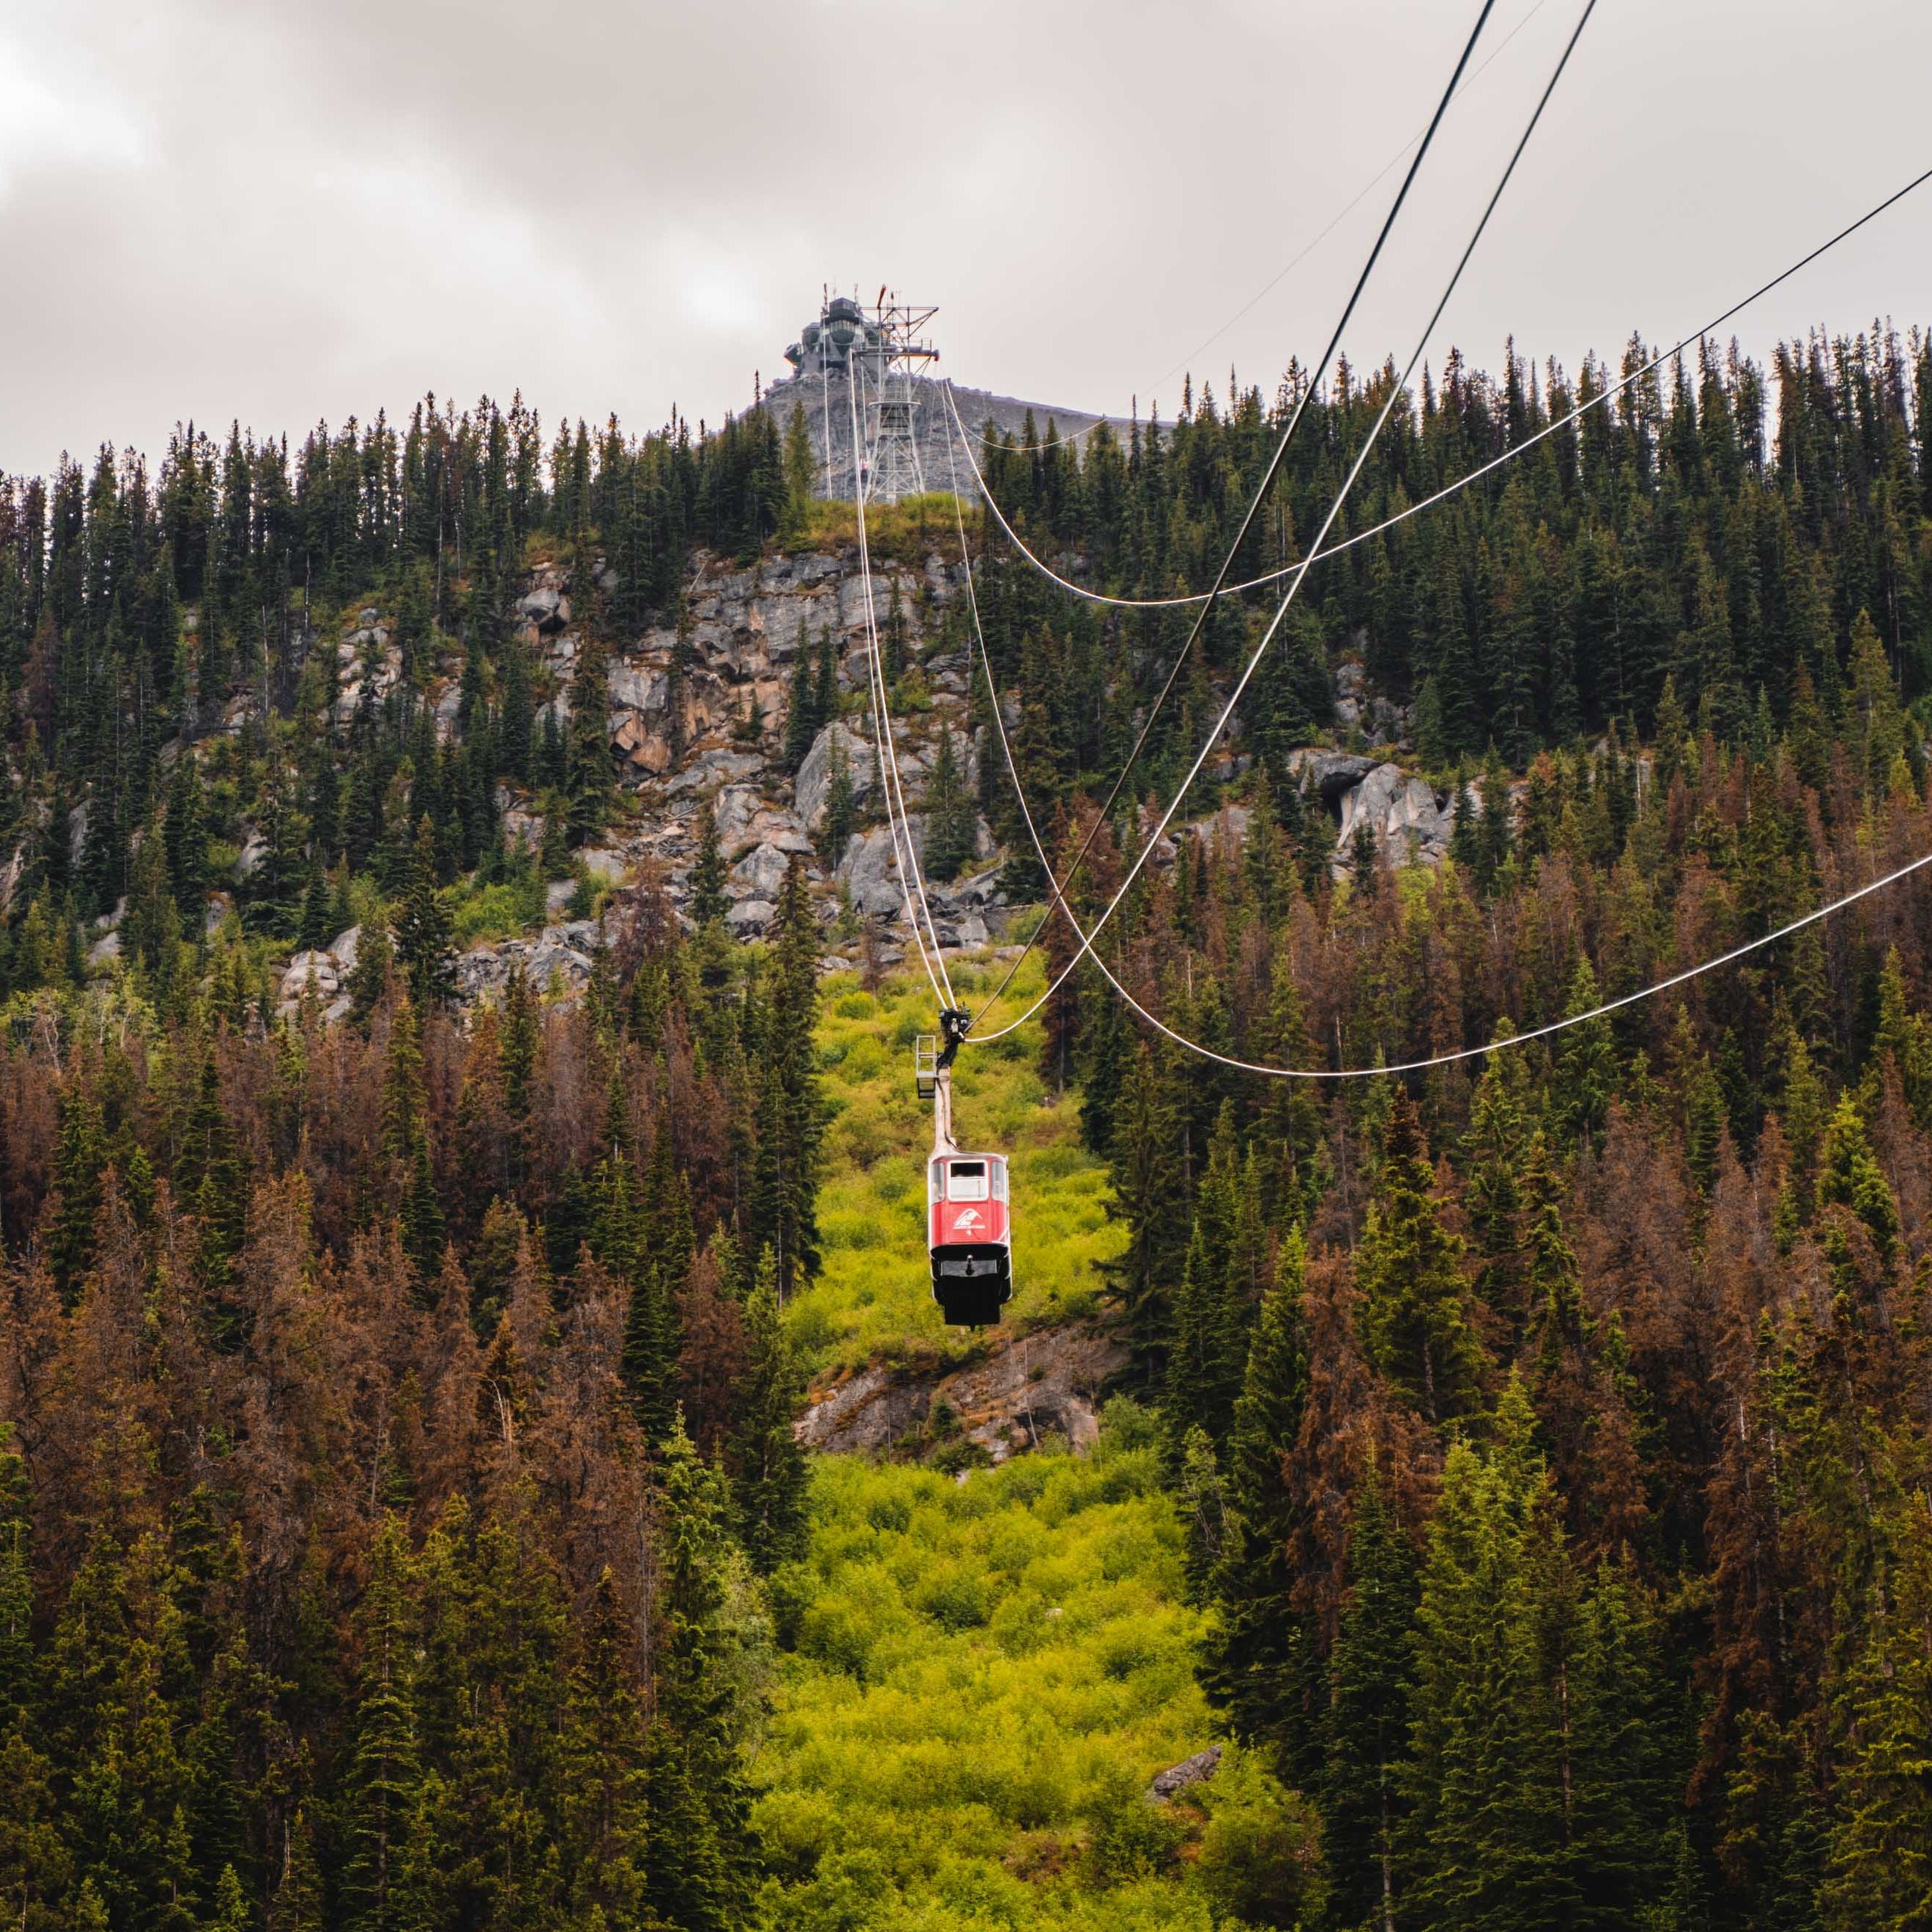 Swoop | picture of the Jasper SkyTram, get the best views of the Canadian Rockies up high at 2,263 metres off the ground